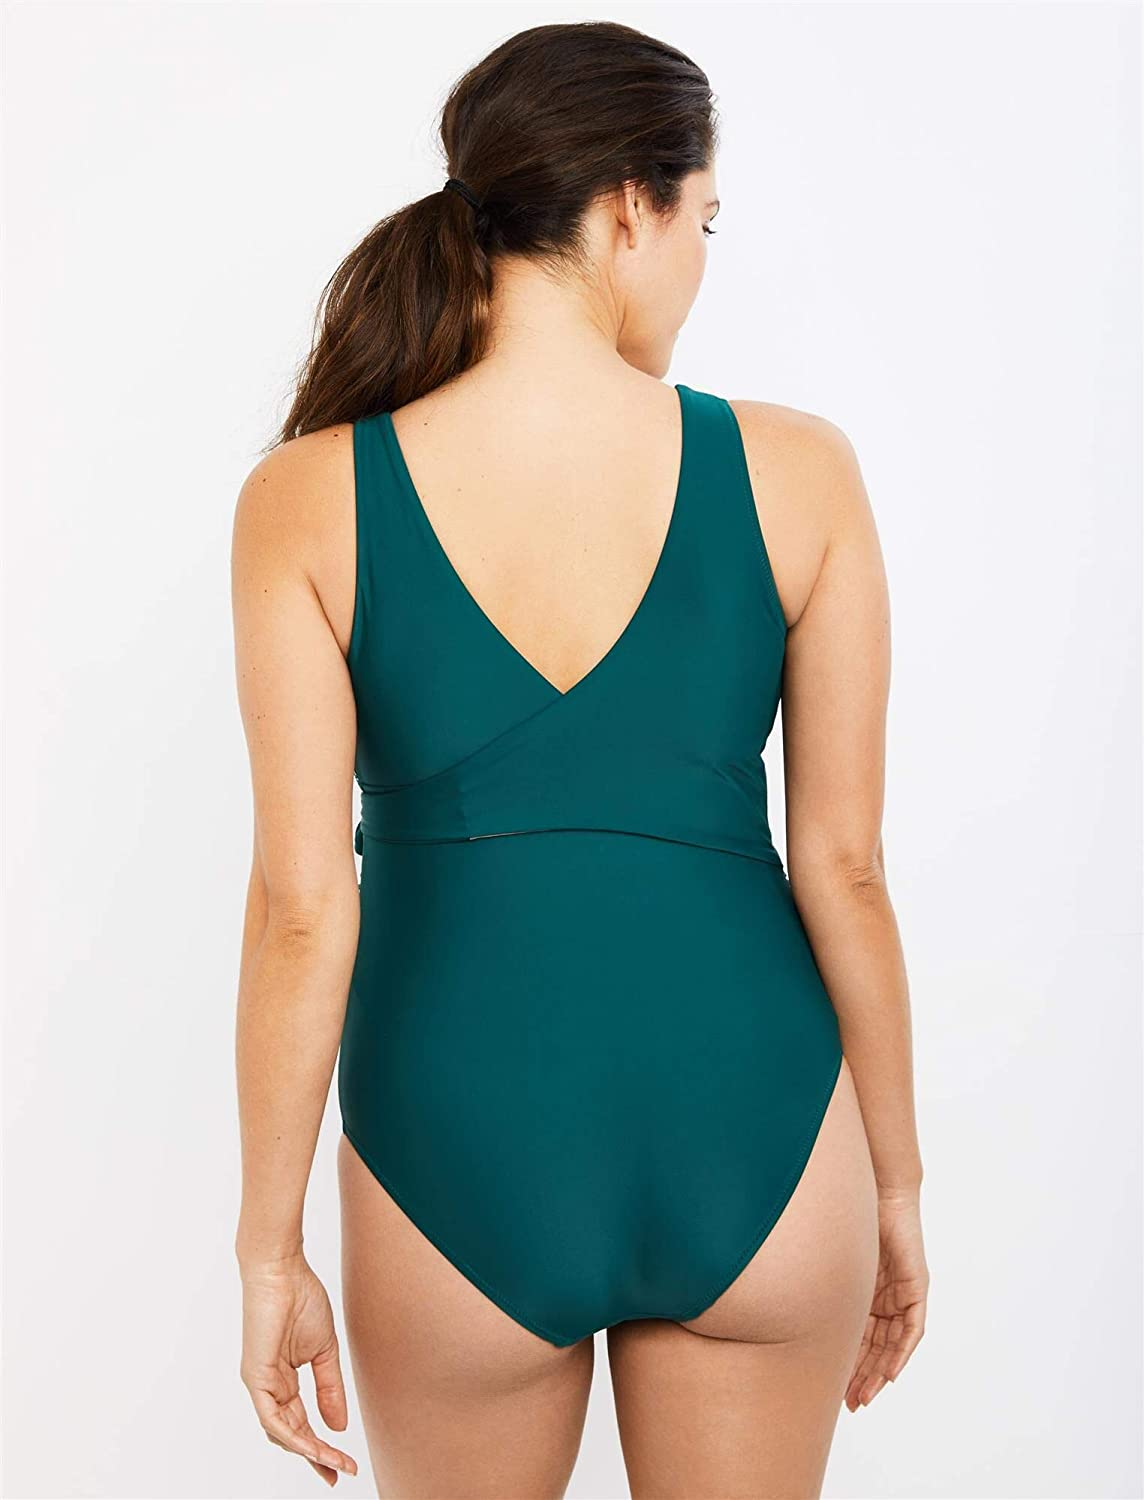 B07K6MS8FK A Pea in the Pod Maternity One Piece Swimsuit 71PI52BxuPoL